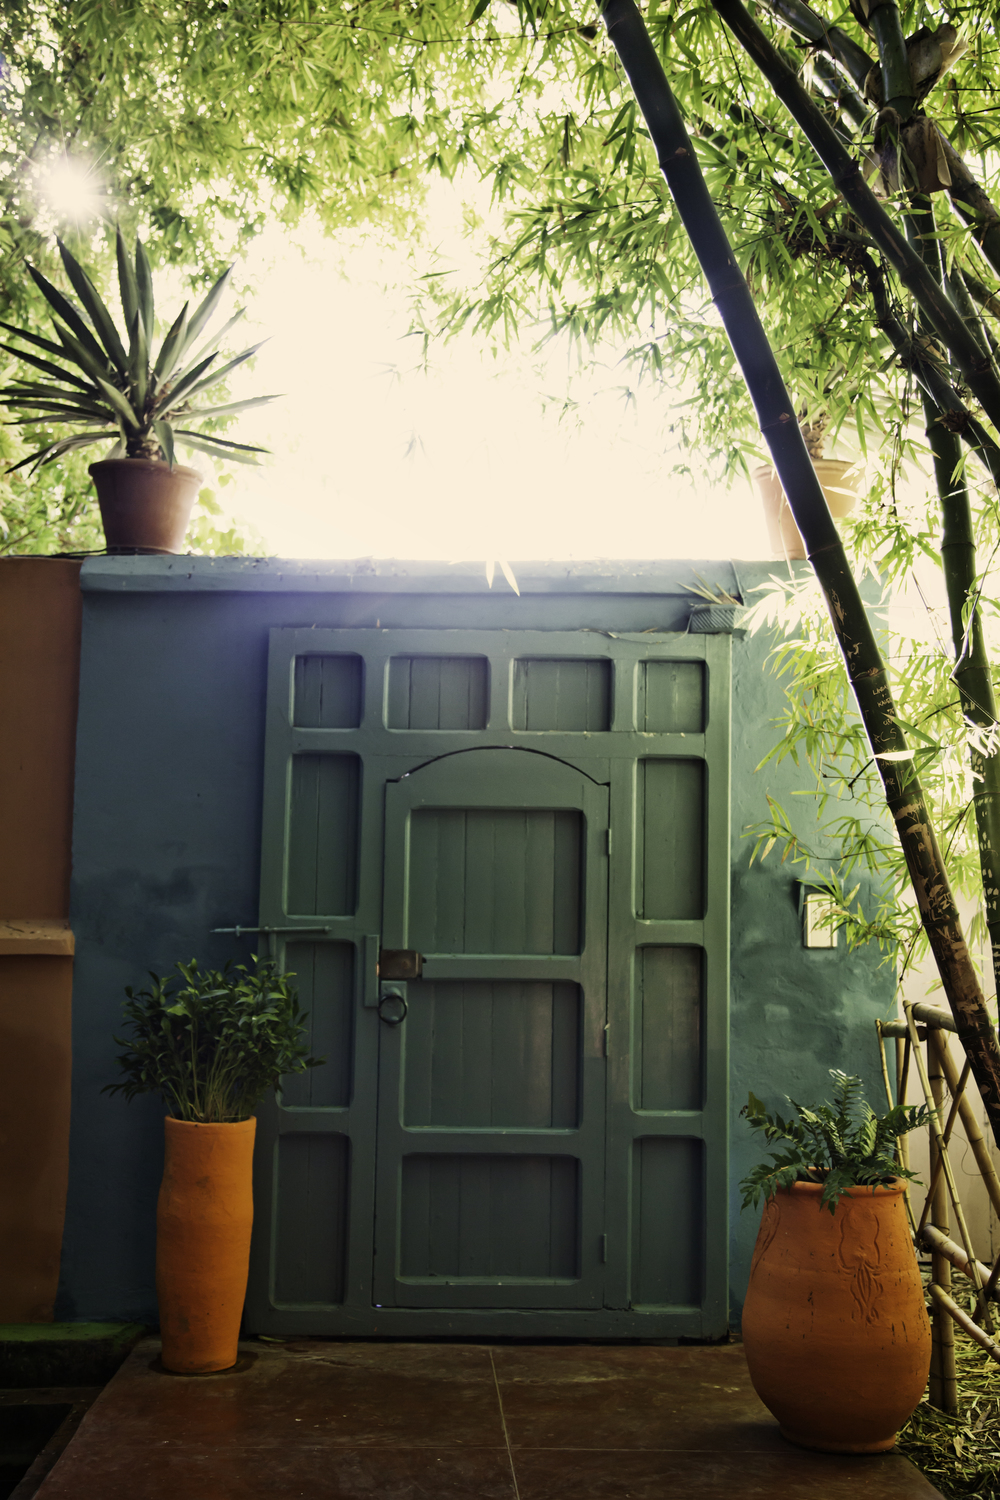 green-door-orange-vases-majorelle-gardens-travel-photographer.jpg